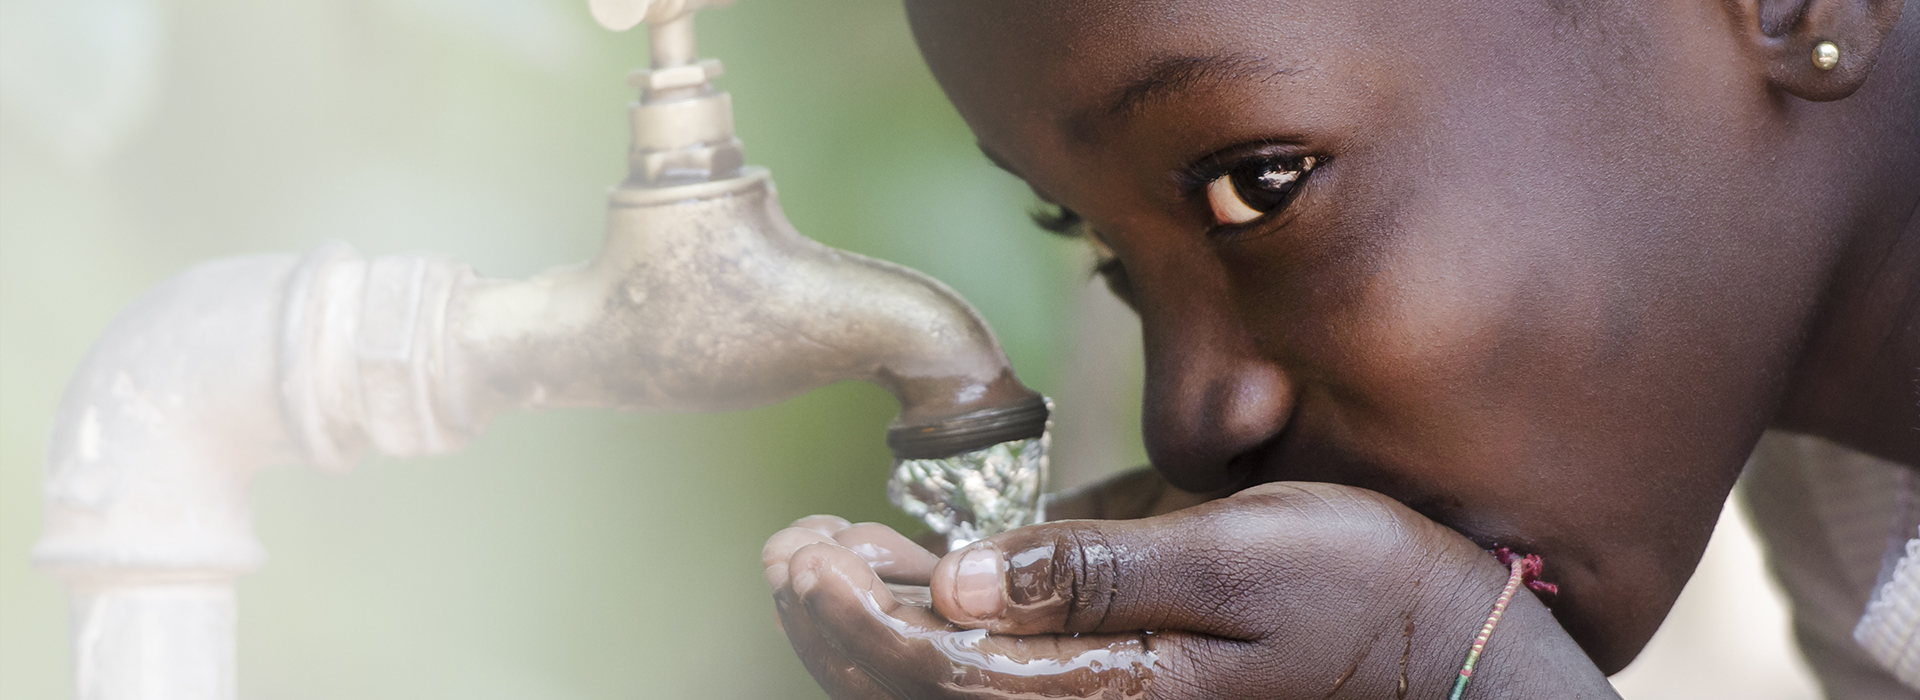 Young girl drinking water from faucet